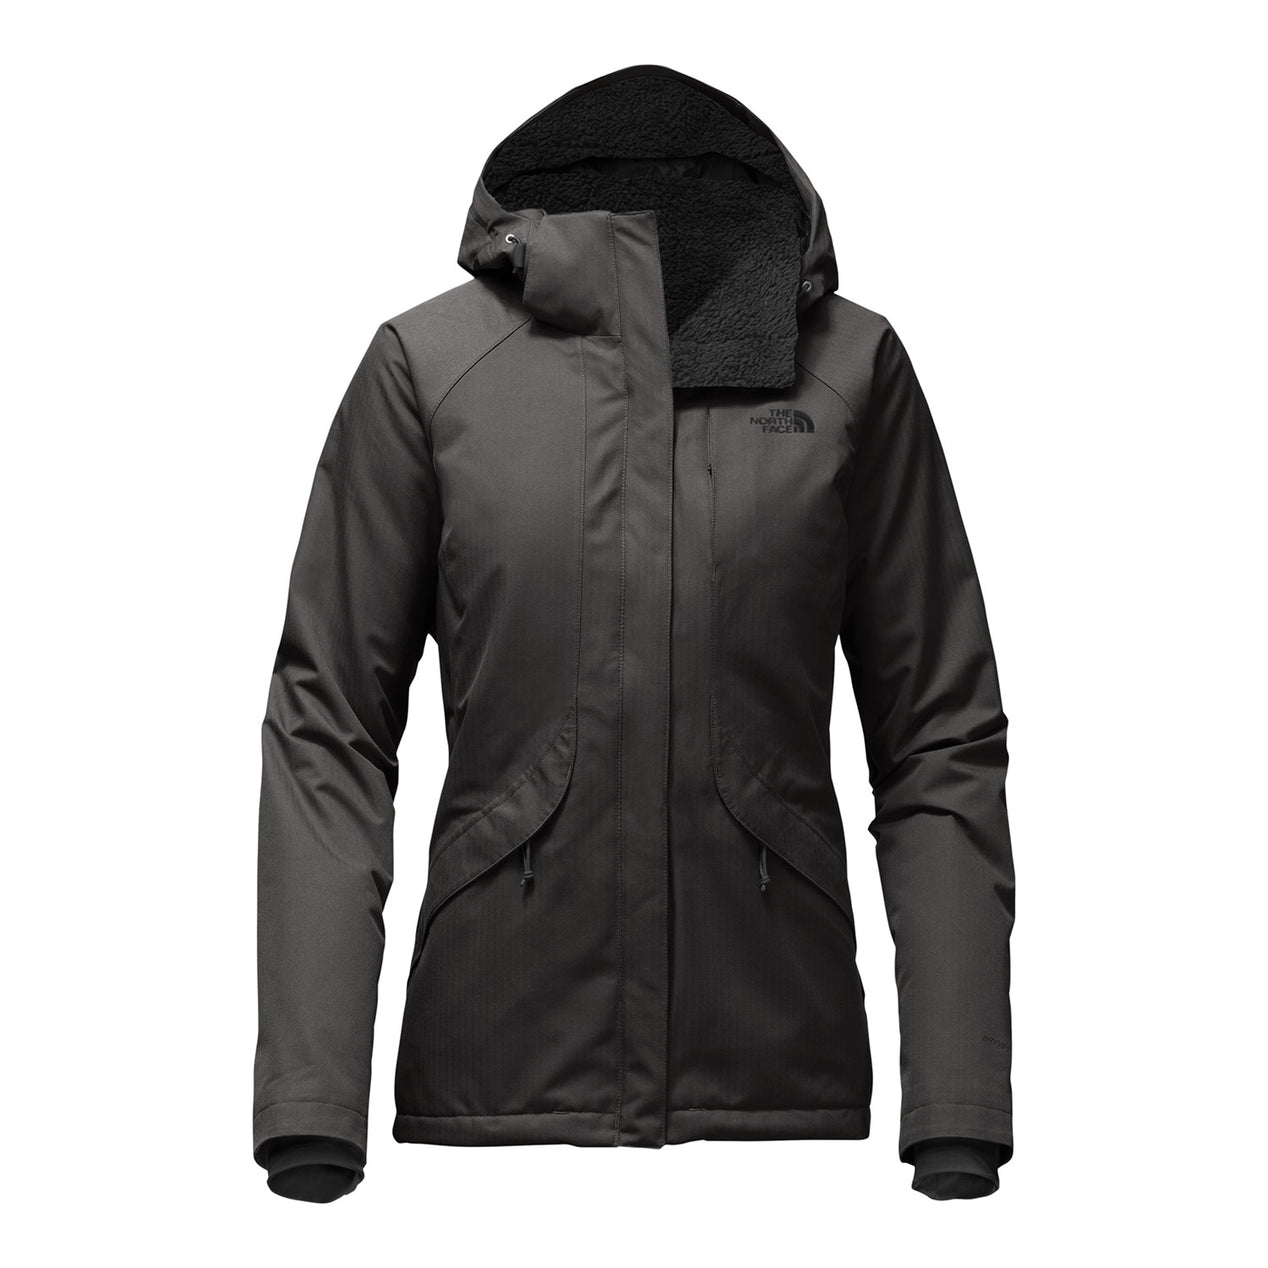 072c351ccd07 The North Face Women s Inlux Insulated Jacket